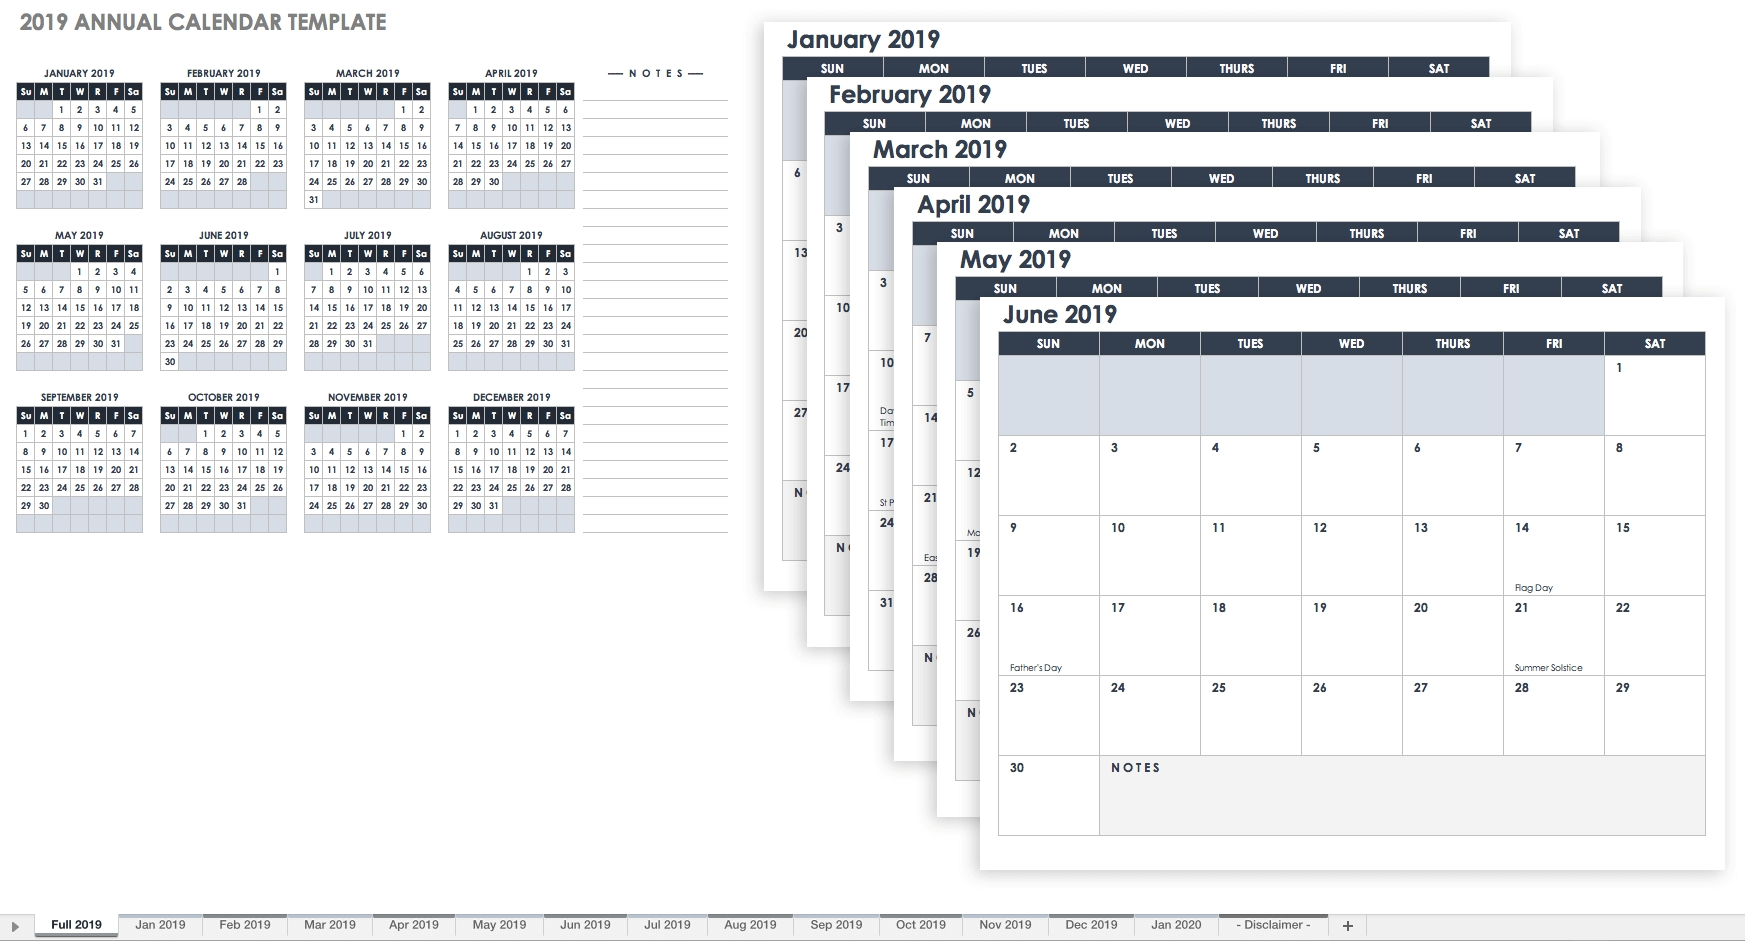 15 Free Monthly Calendar Templates | Smartsheet with regard to Blank Monthly Calendar To Download Free